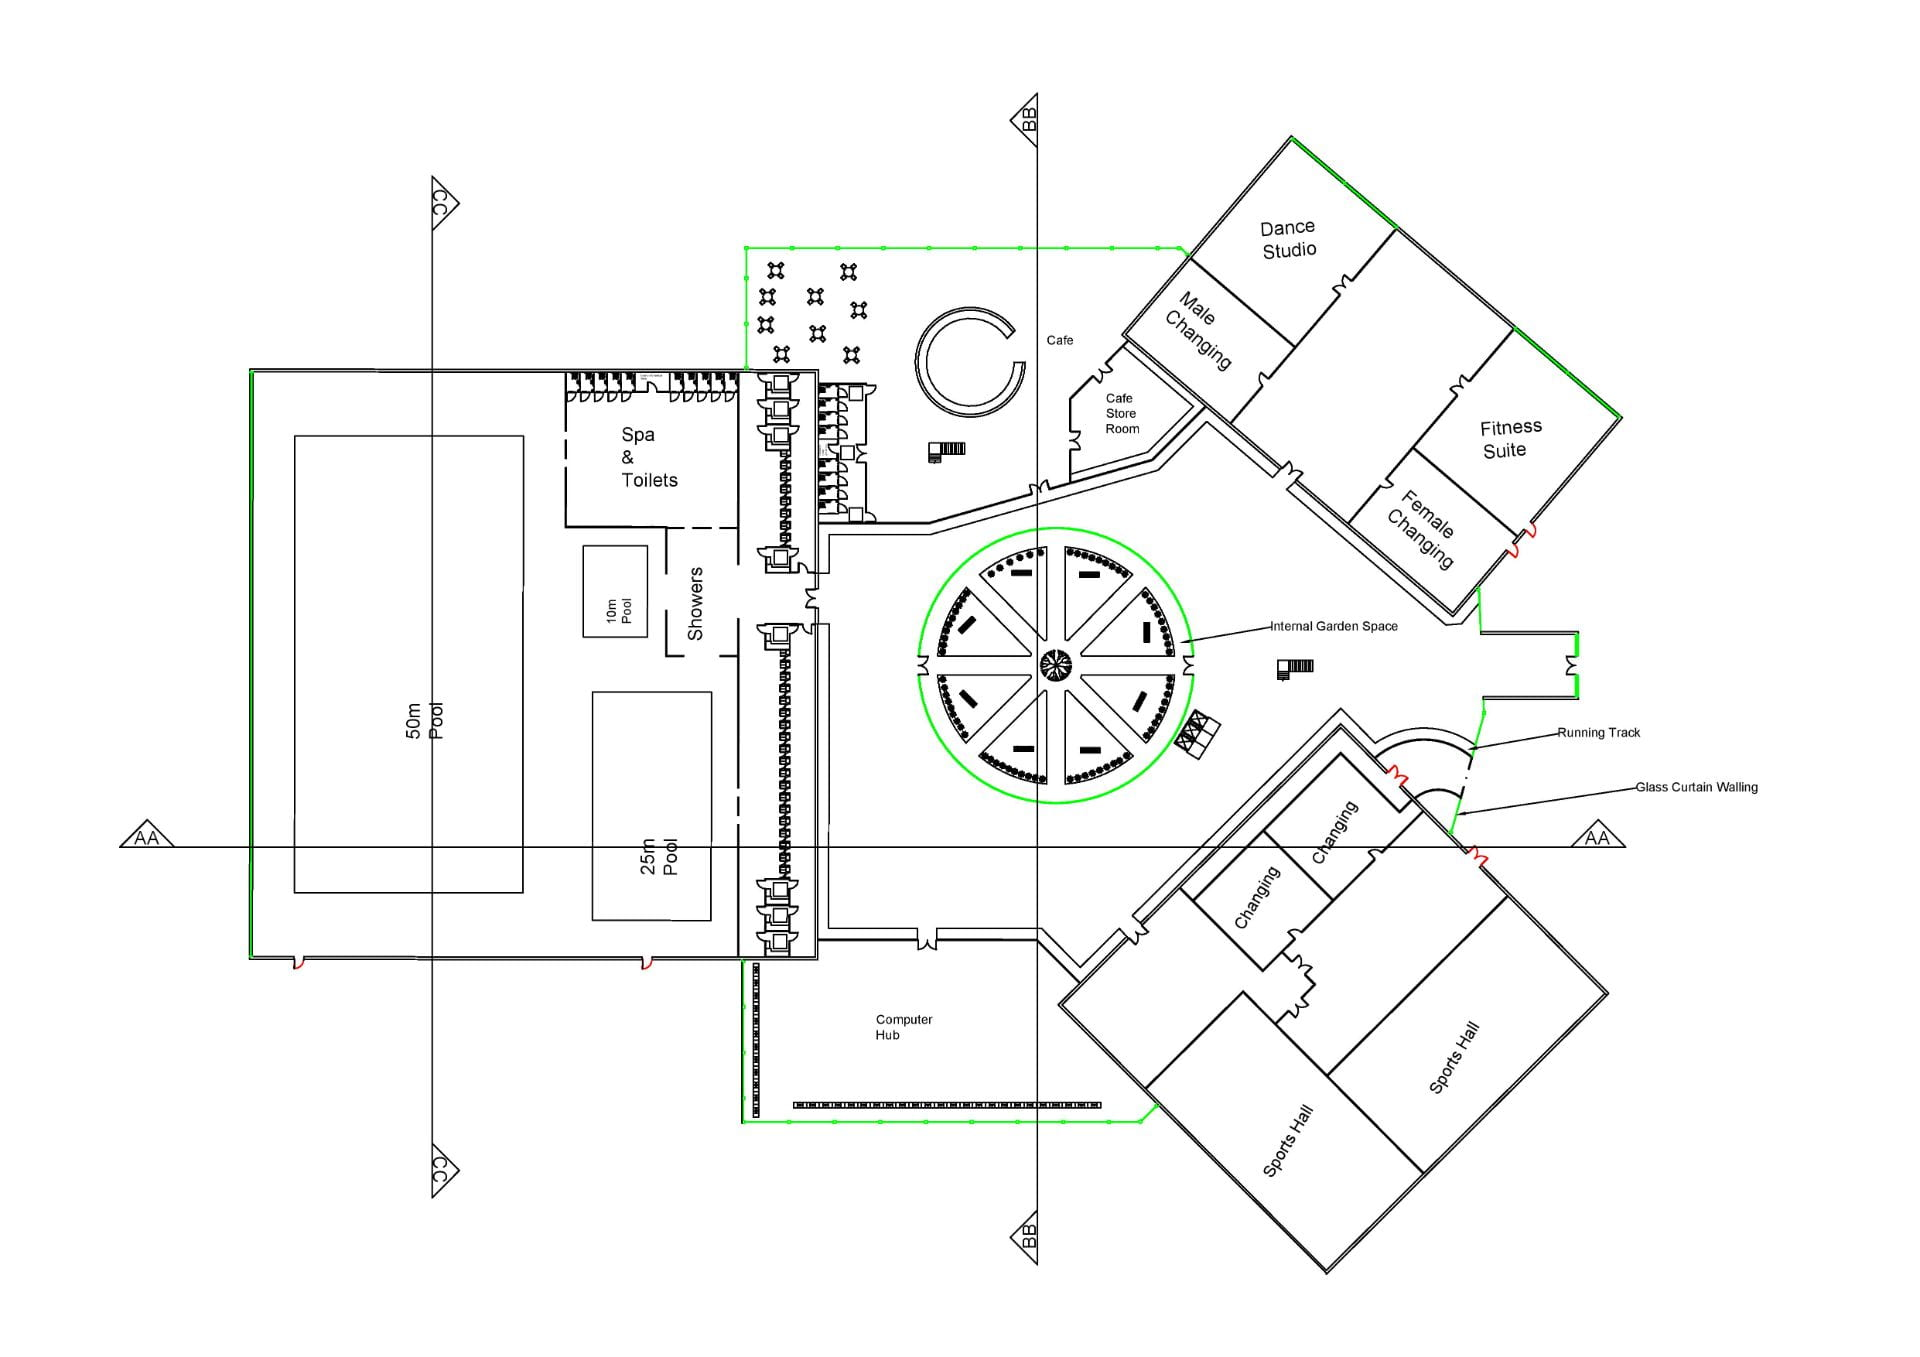 Ground floor plan for the building